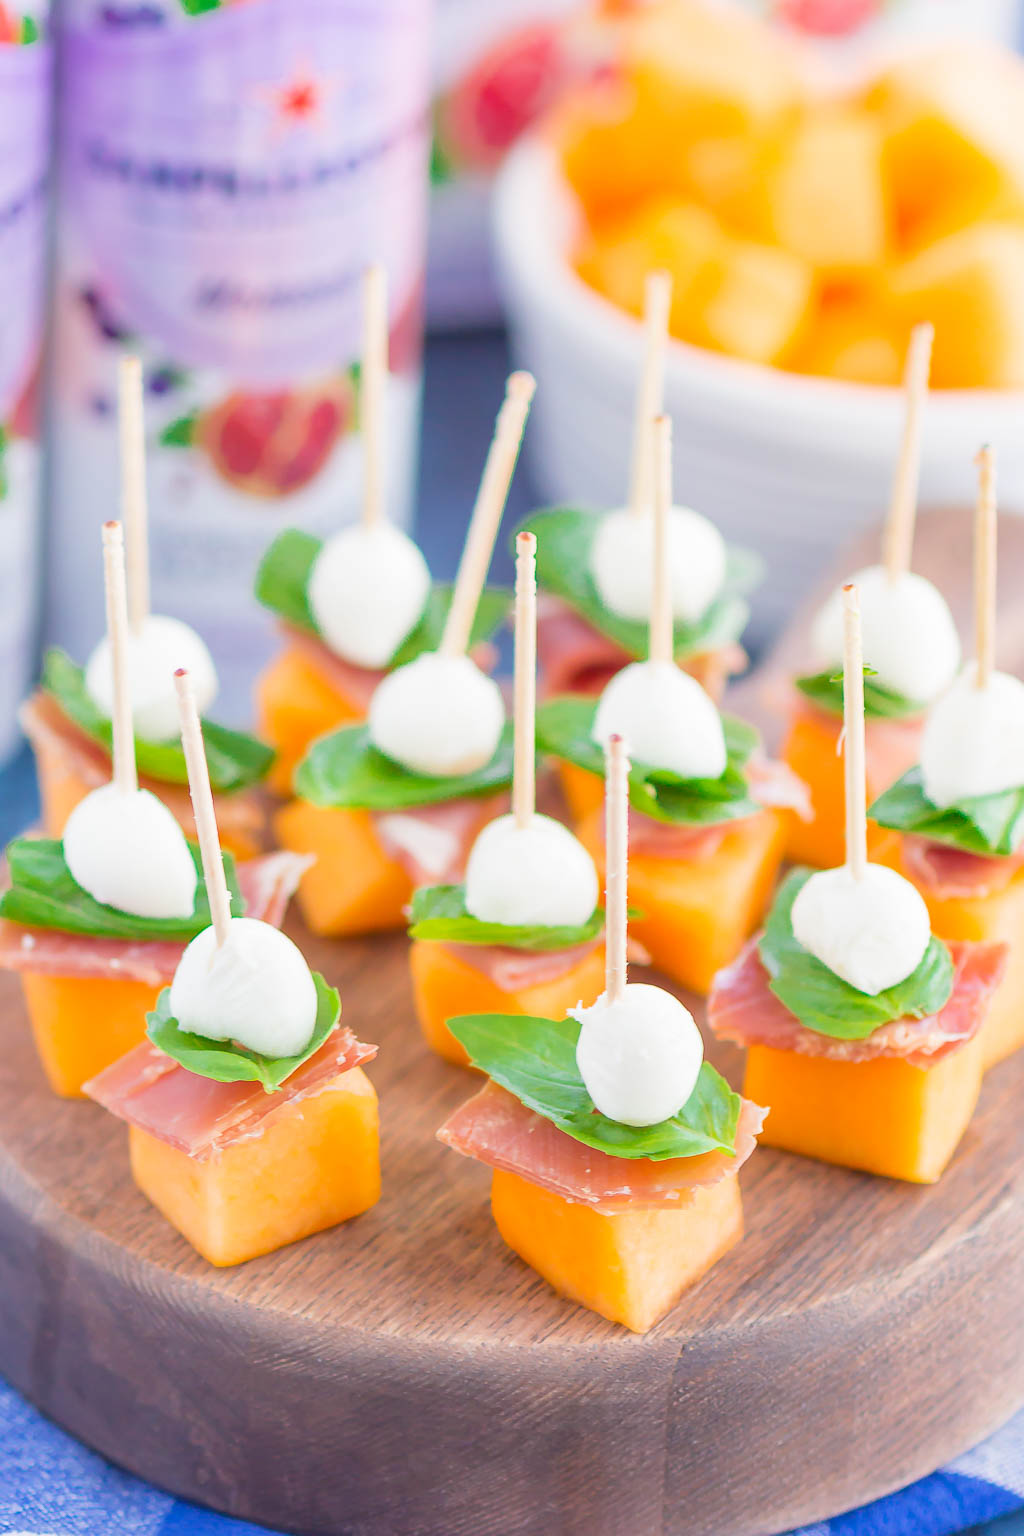 Prosciutto Melon Bites are a simple, sweet and salty appetizer that's perfect for any time. Salty prosciutto and sweet melon are paired with fresh mozzarella and basil to create a match made in food heaven. Easy to make and ready in no time, everyone will love these tasty bites! #prosciuttobites #melonbites #prosciuttomelon #prosciuttoappetizer